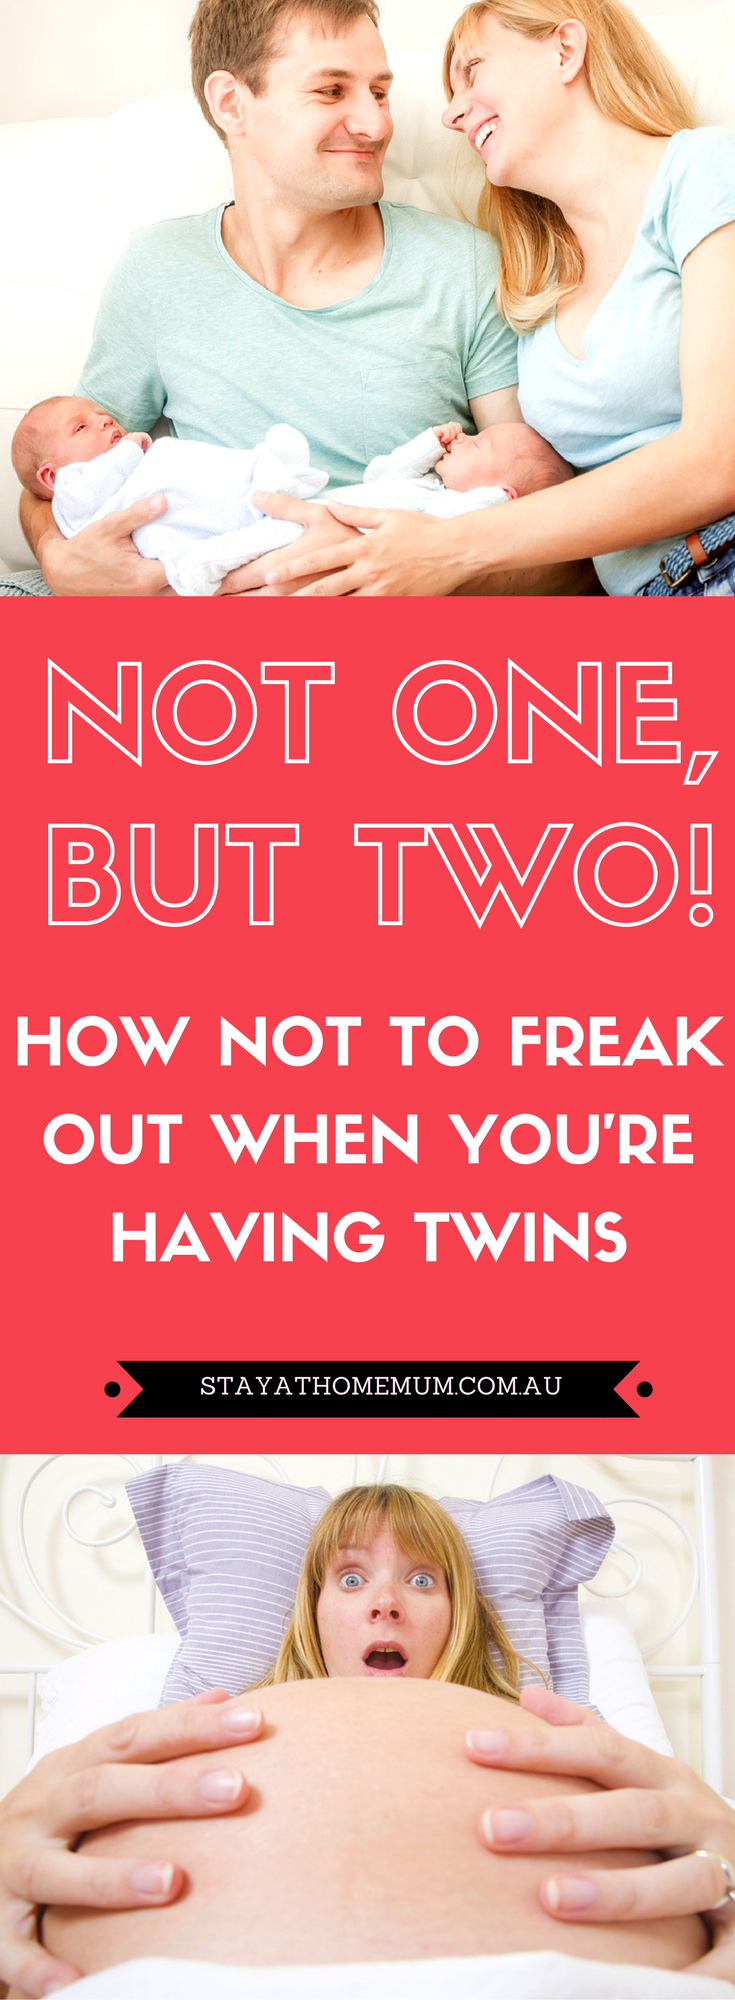 Not One, But Two! How NOT To Freak Out When You're Having Twins